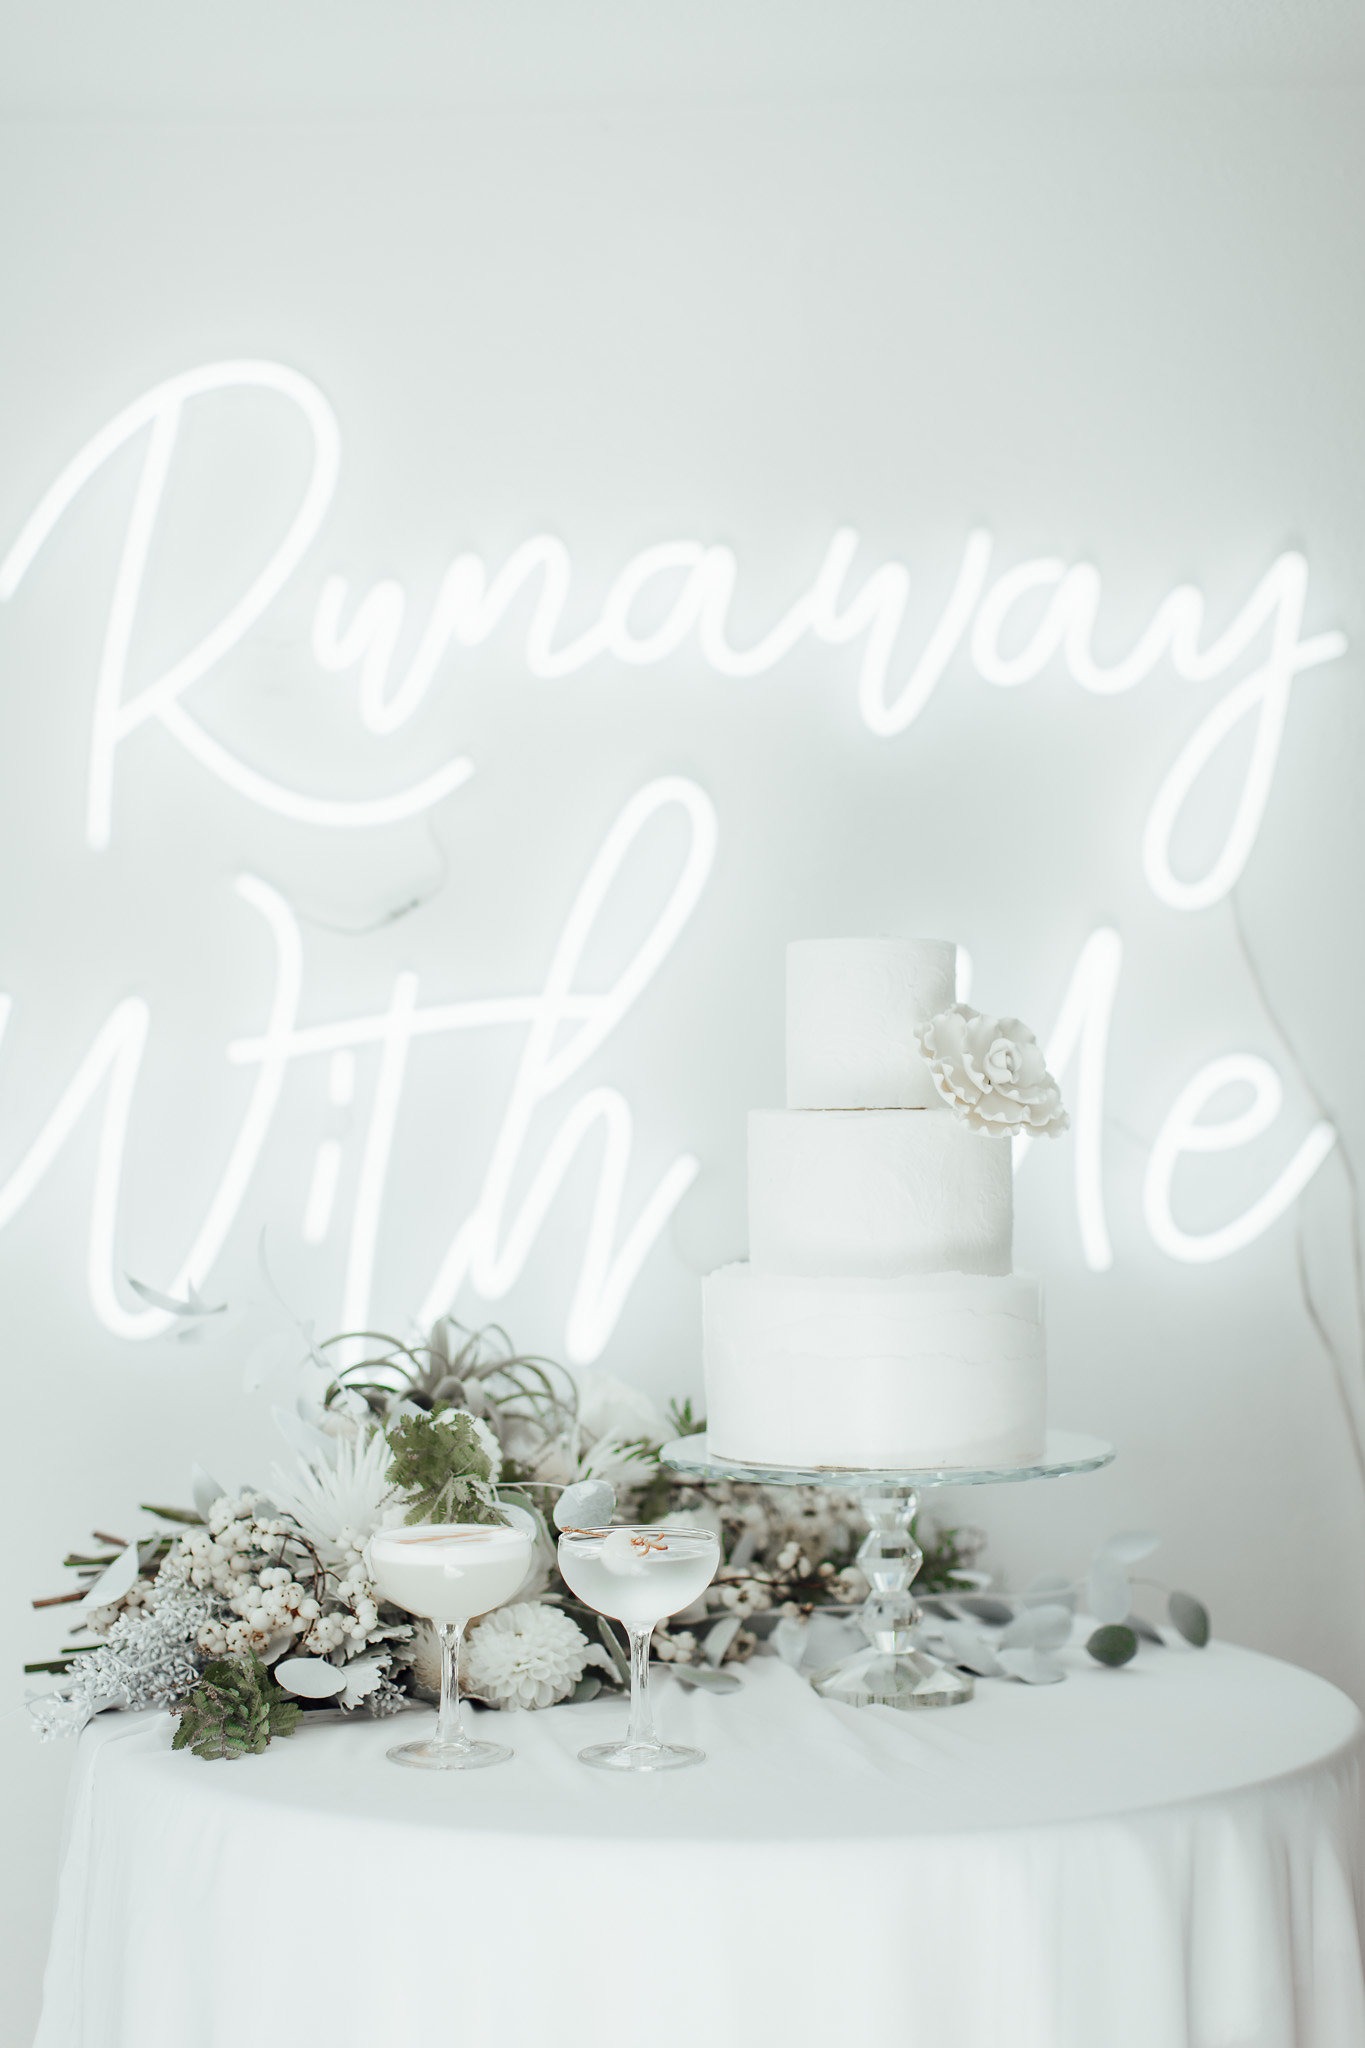 A New Winter Mix: Monochromatic White Wedding Styled Shoot with White Neon Sign and Cocktails